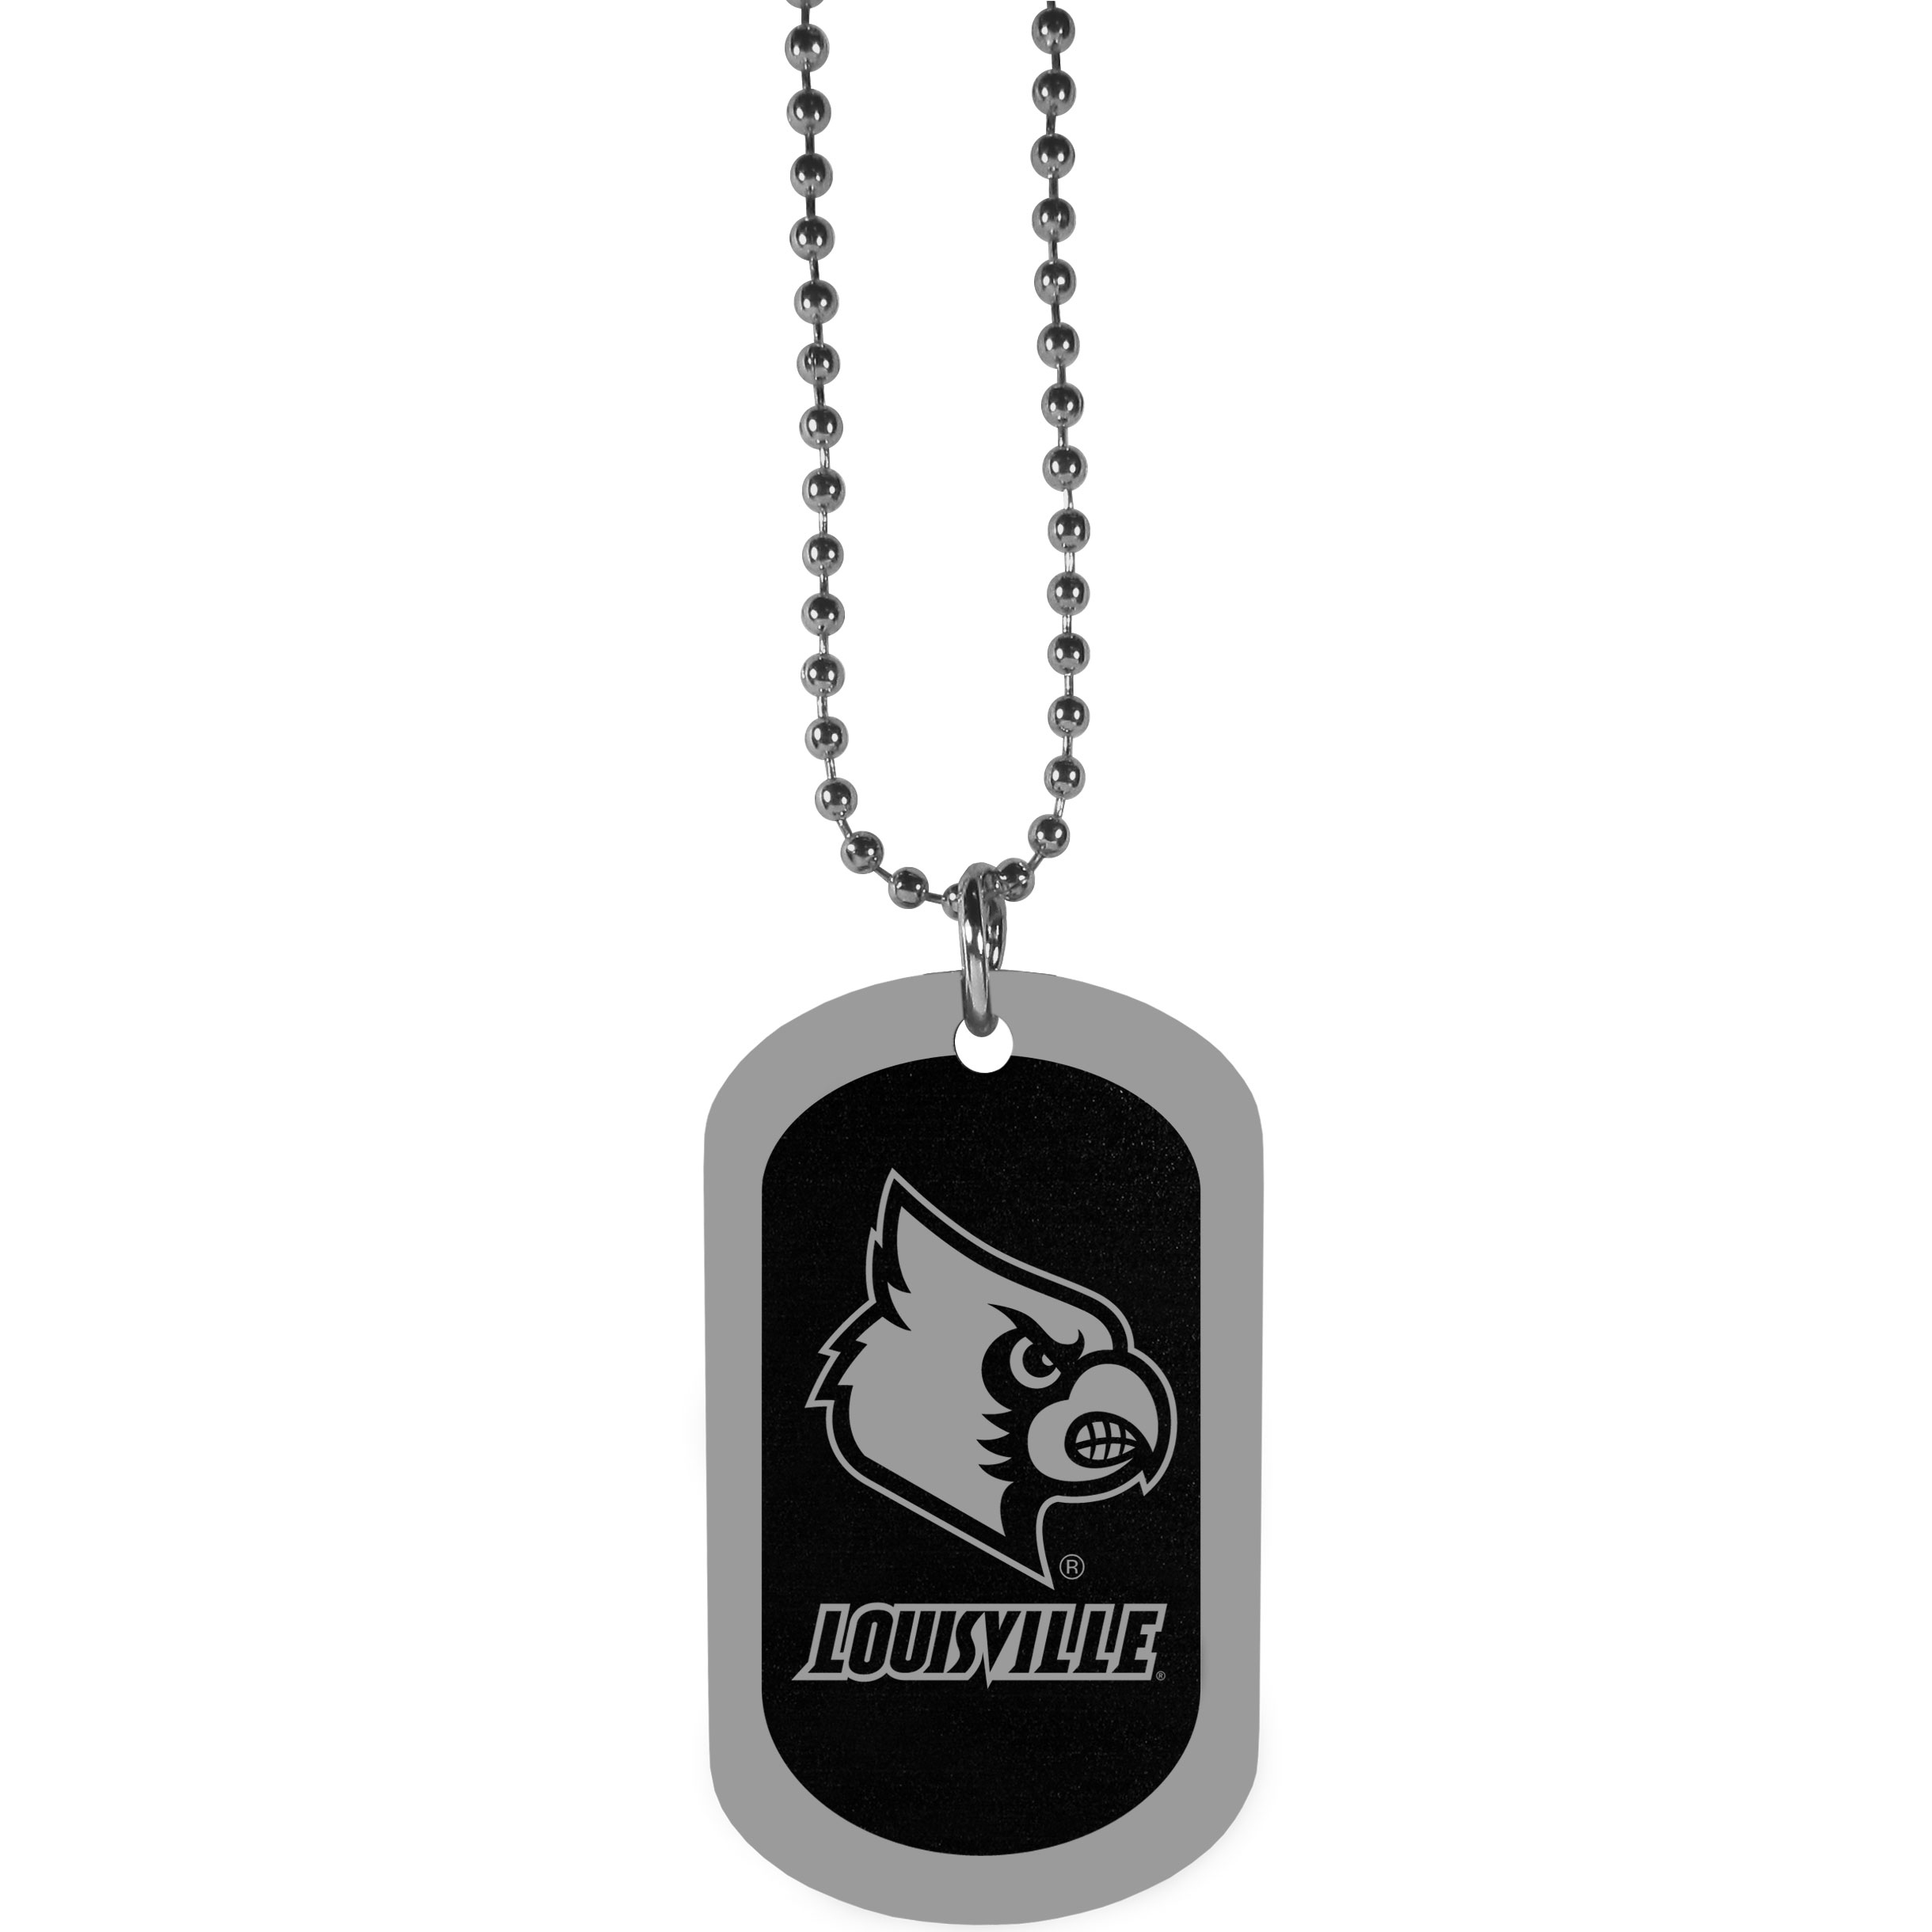 Louisville Cardinals Chrome Tag Necklace - Dog tag necklaces are a fashion statement that is here to stay. The sporty version of the classic tag features a black printed over a high polish tag to create a bold and sporty look. The tag comes on a 26 inch ball chain with a ball and joint clasp. Any Louisville Cardinals would be proud to wear this attractive fashion accessory.